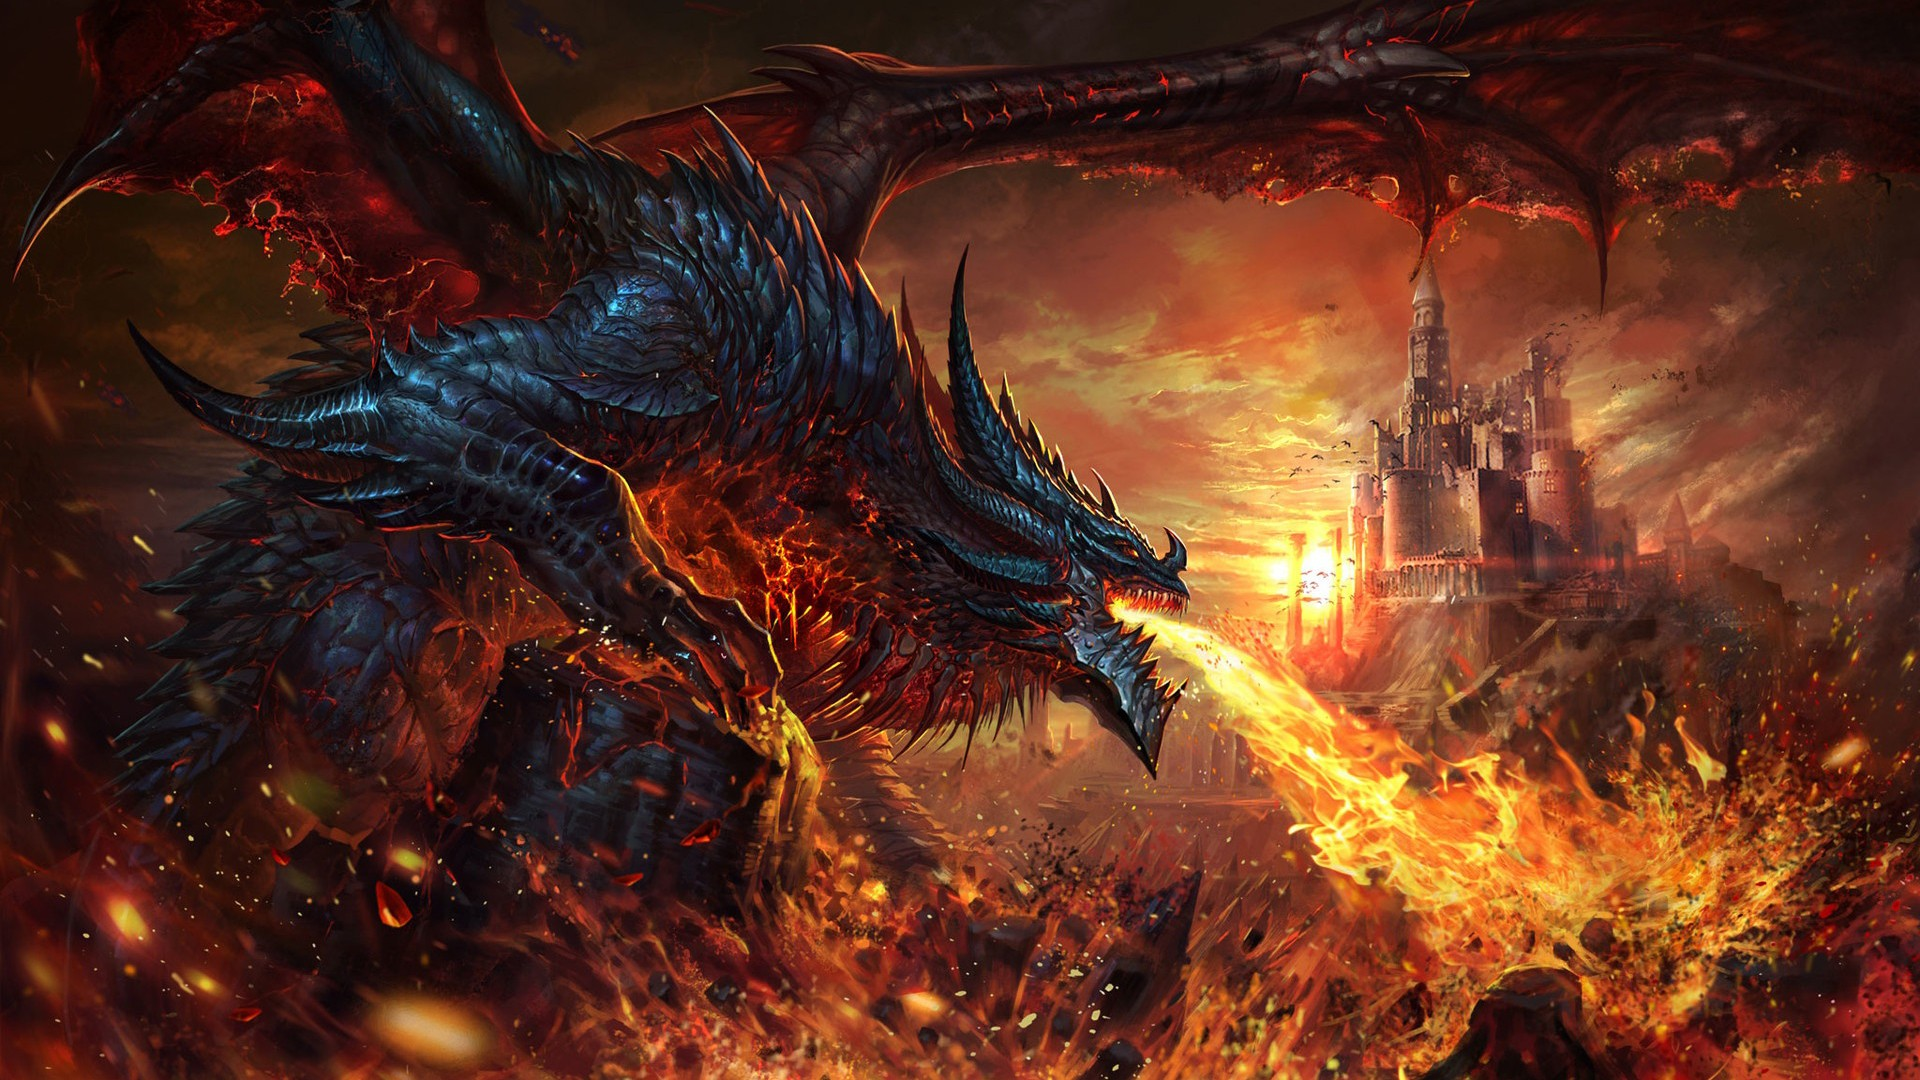 Fantasy Dragon Is Breathing Fire On Castle Hd Dreamy